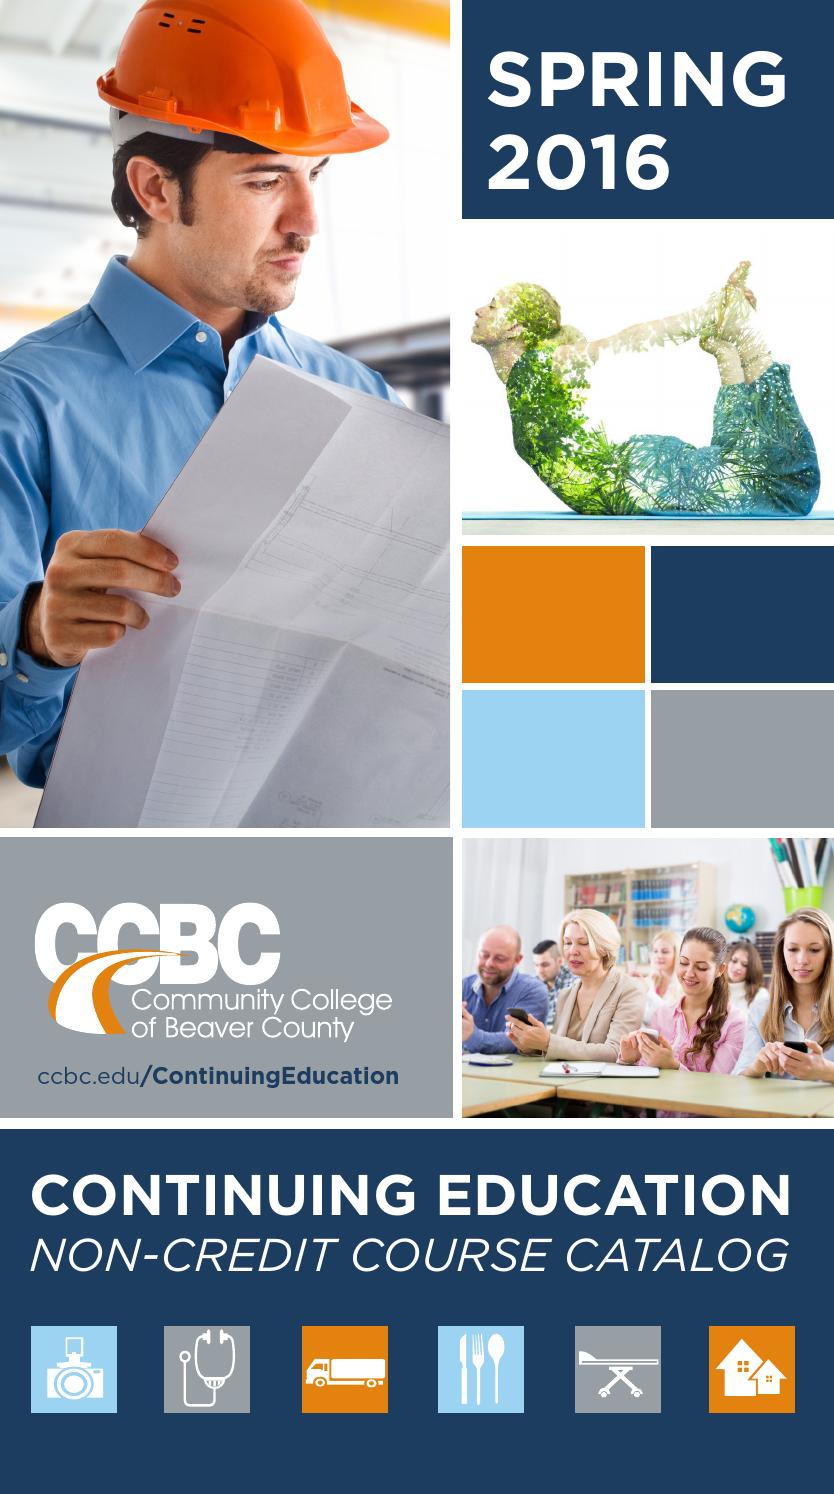 ccbc spring 2016 continuing education catalog by community. Black Bedroom Furniture Sets. Home Design Ideas